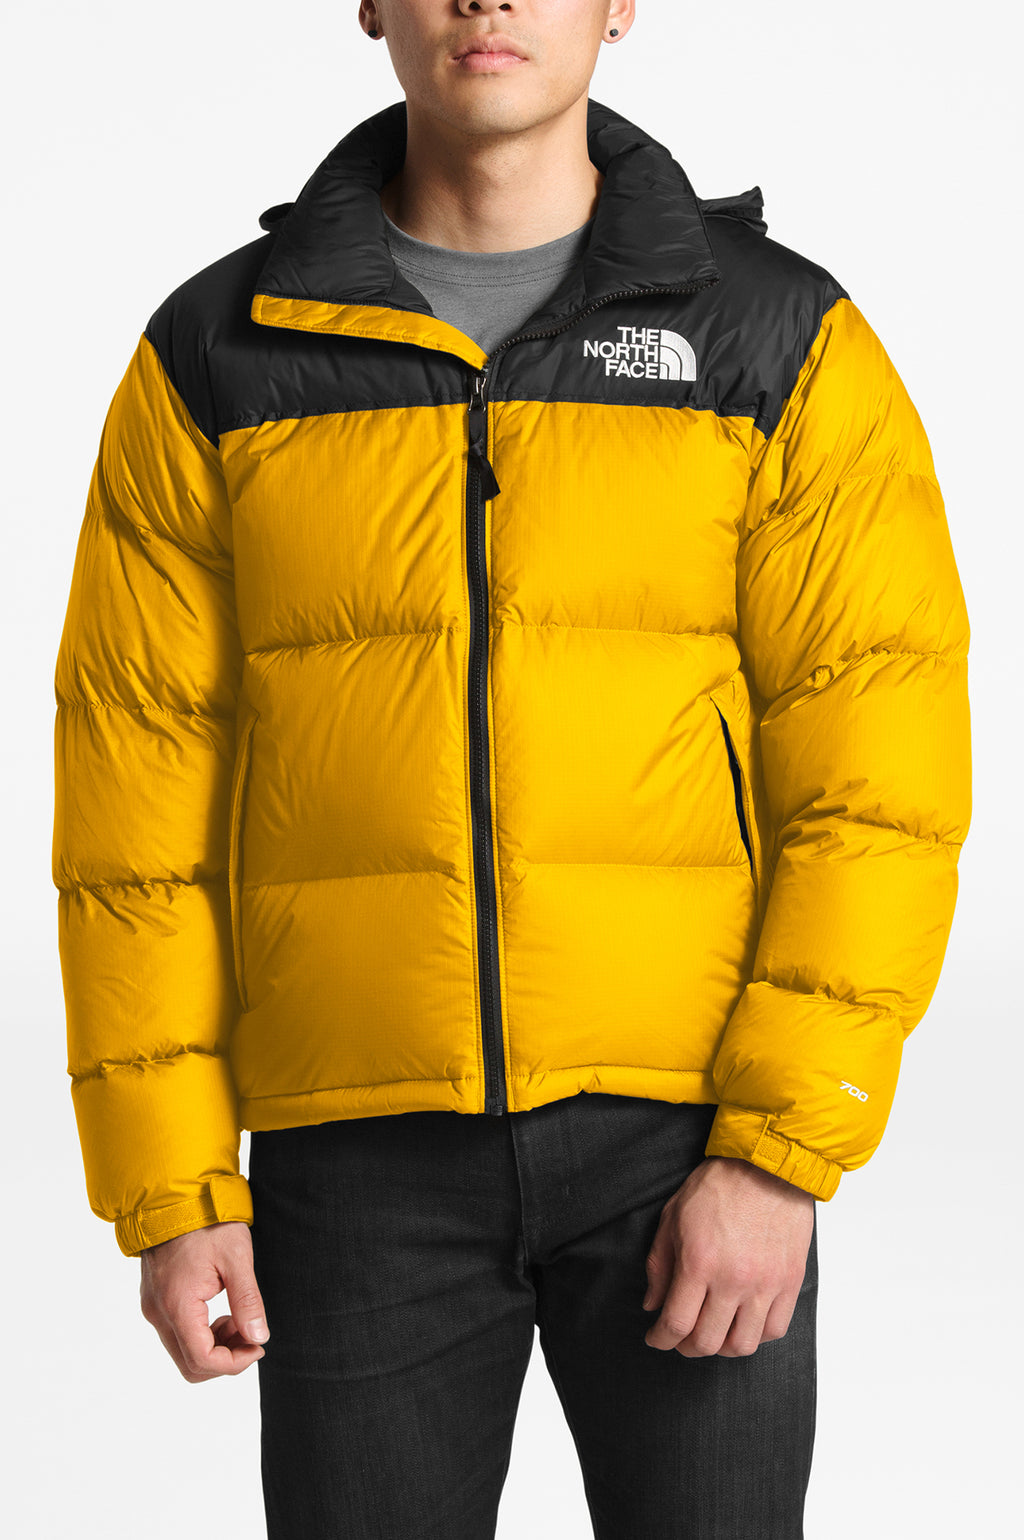 THE NORTH FACE MENS NUPTSE 1996 RETRO JACKET